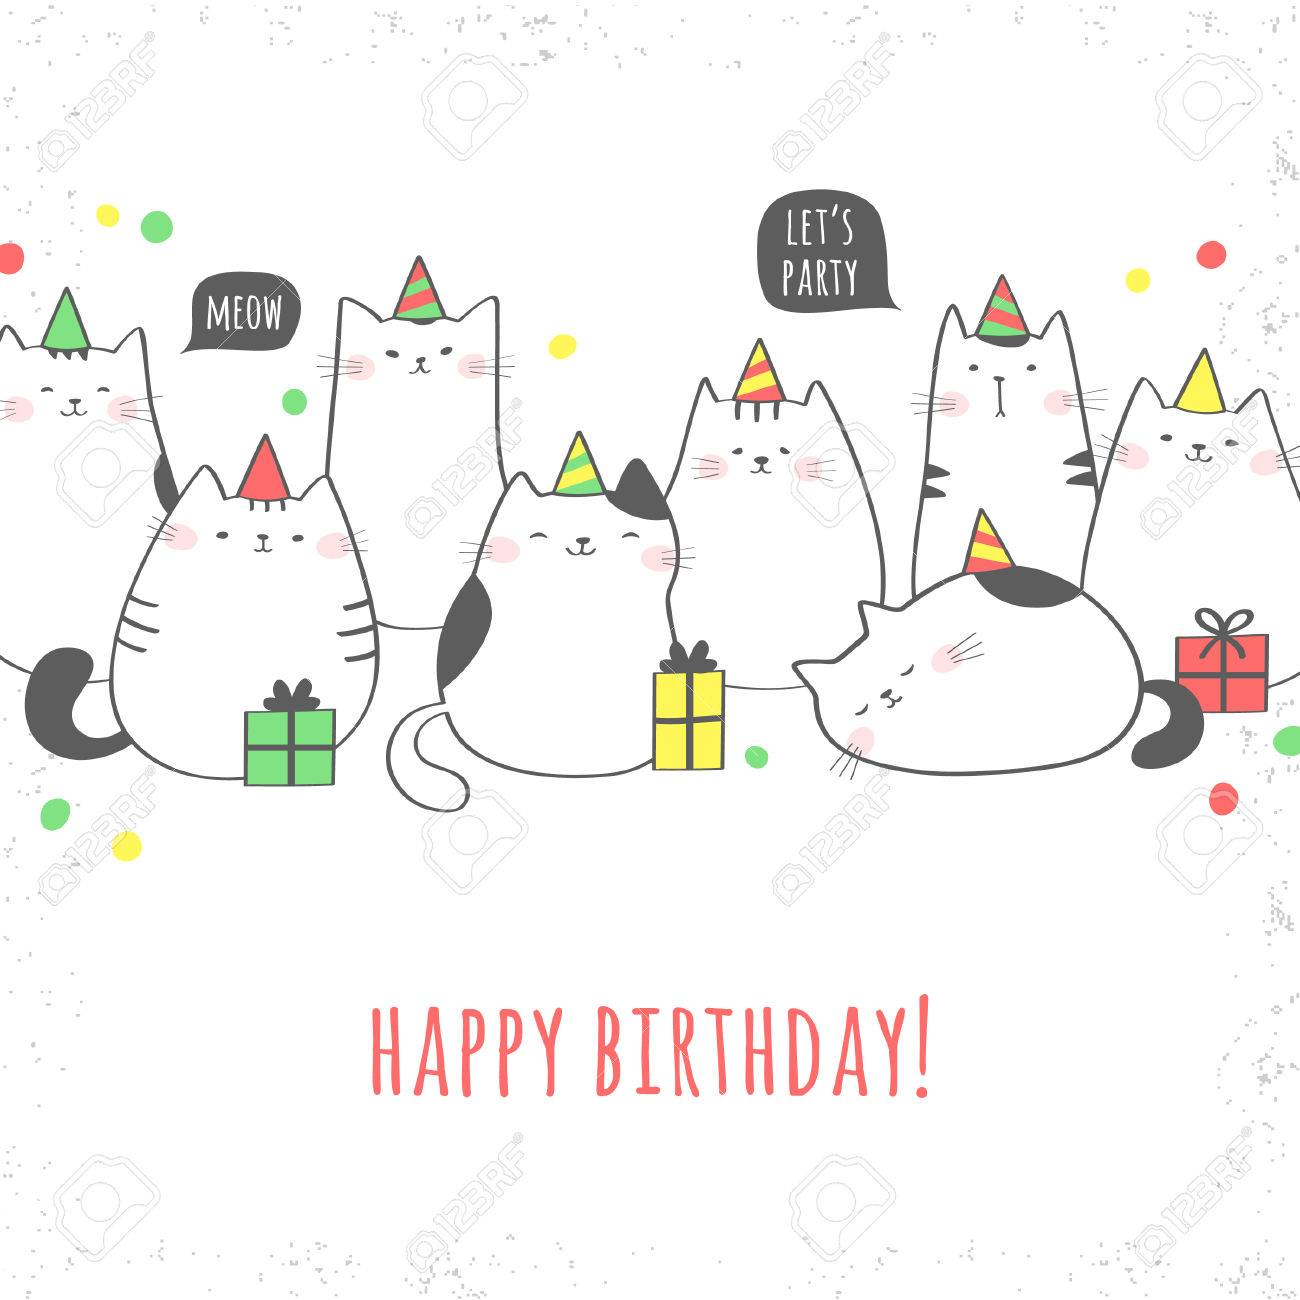 Happy Birthday Greeting Card With Cute Cats And Gifts Party Vector Illustration Stock